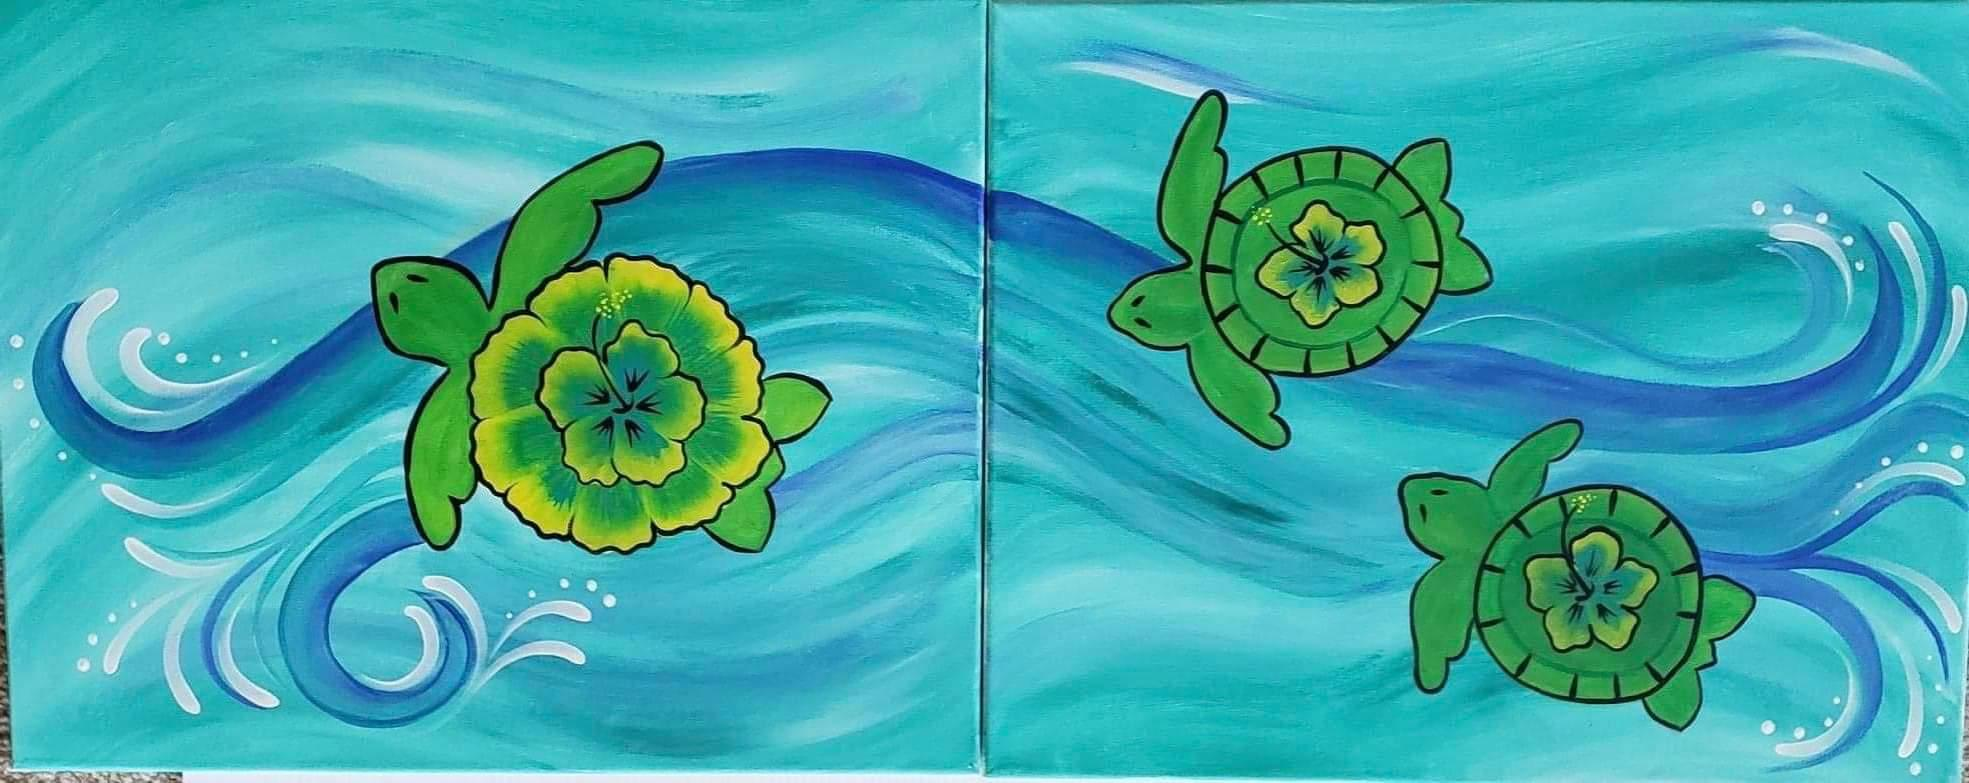 A Follow me into the Sea turtles Partner Painting experience project by Yaymaker